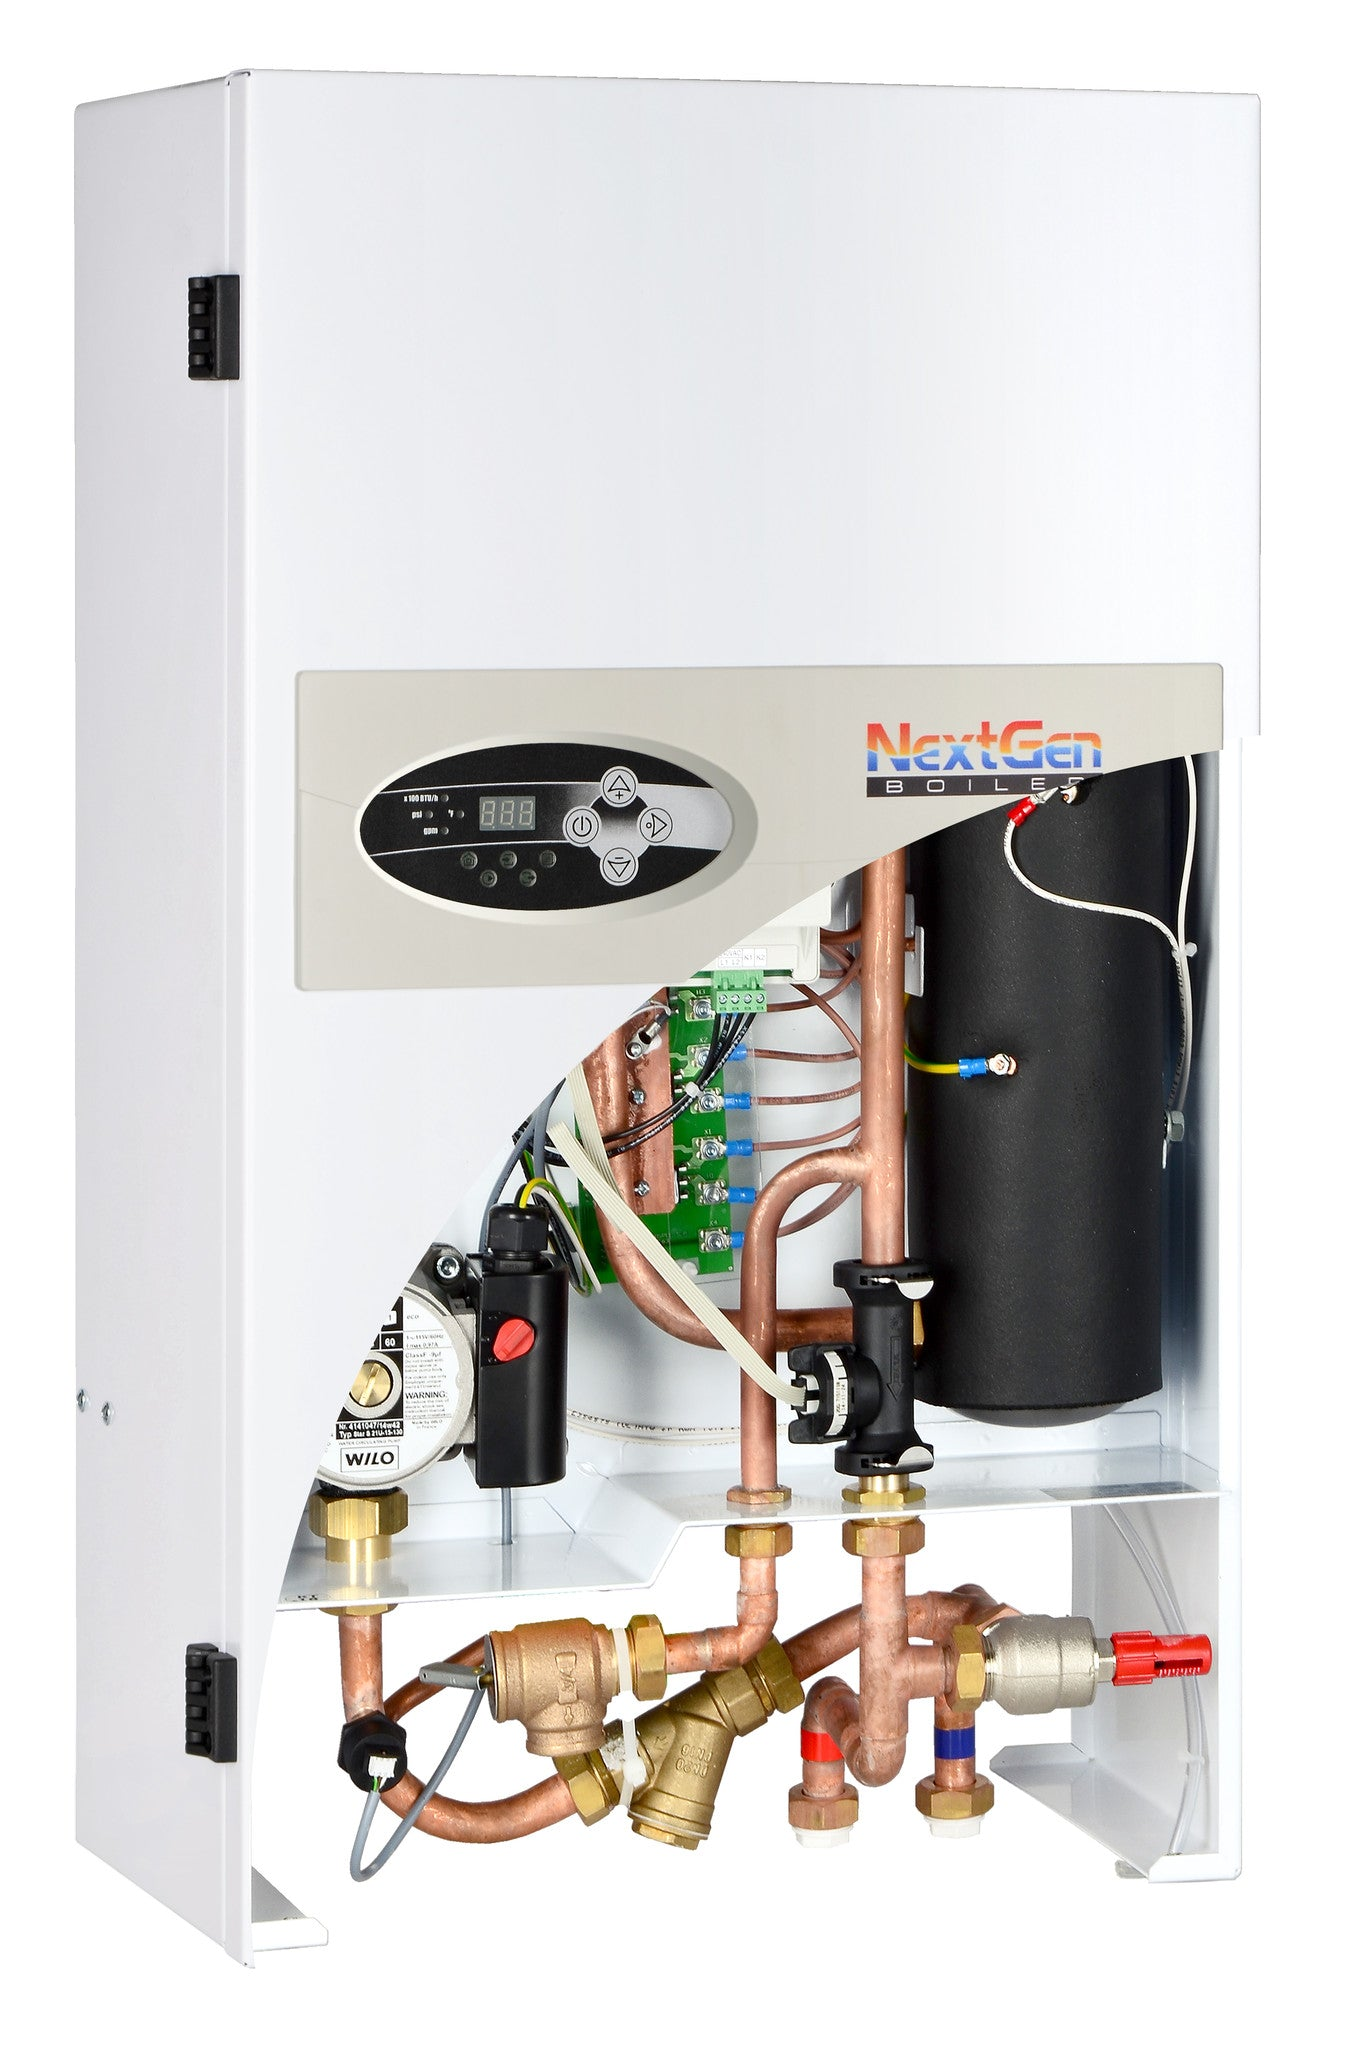 NEXTGEN-14.4 PRE-ASSEMBLED 14.4 kW ELECTRIC, RESIDENTIAL OR COMMERCIAL, MODULATING BOILER